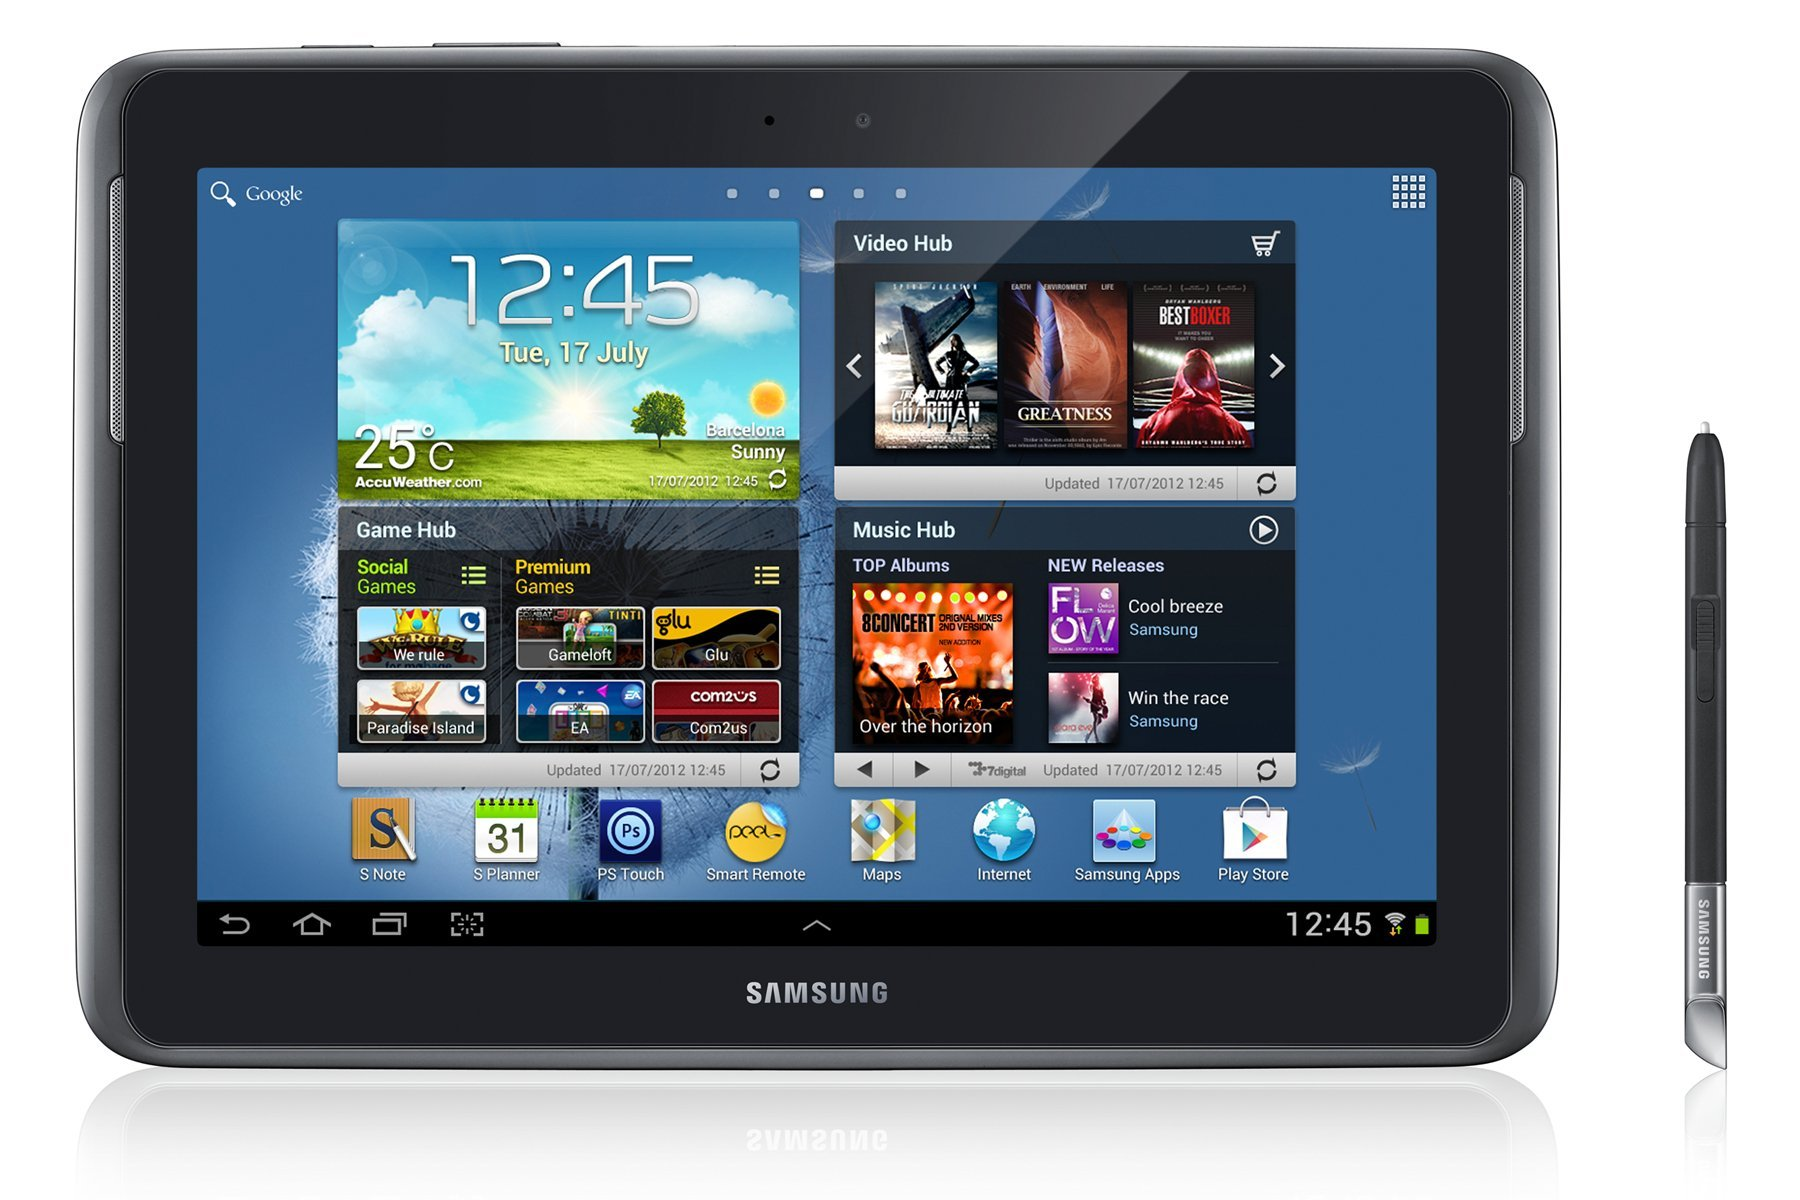 is one of the best android tablets of 2012